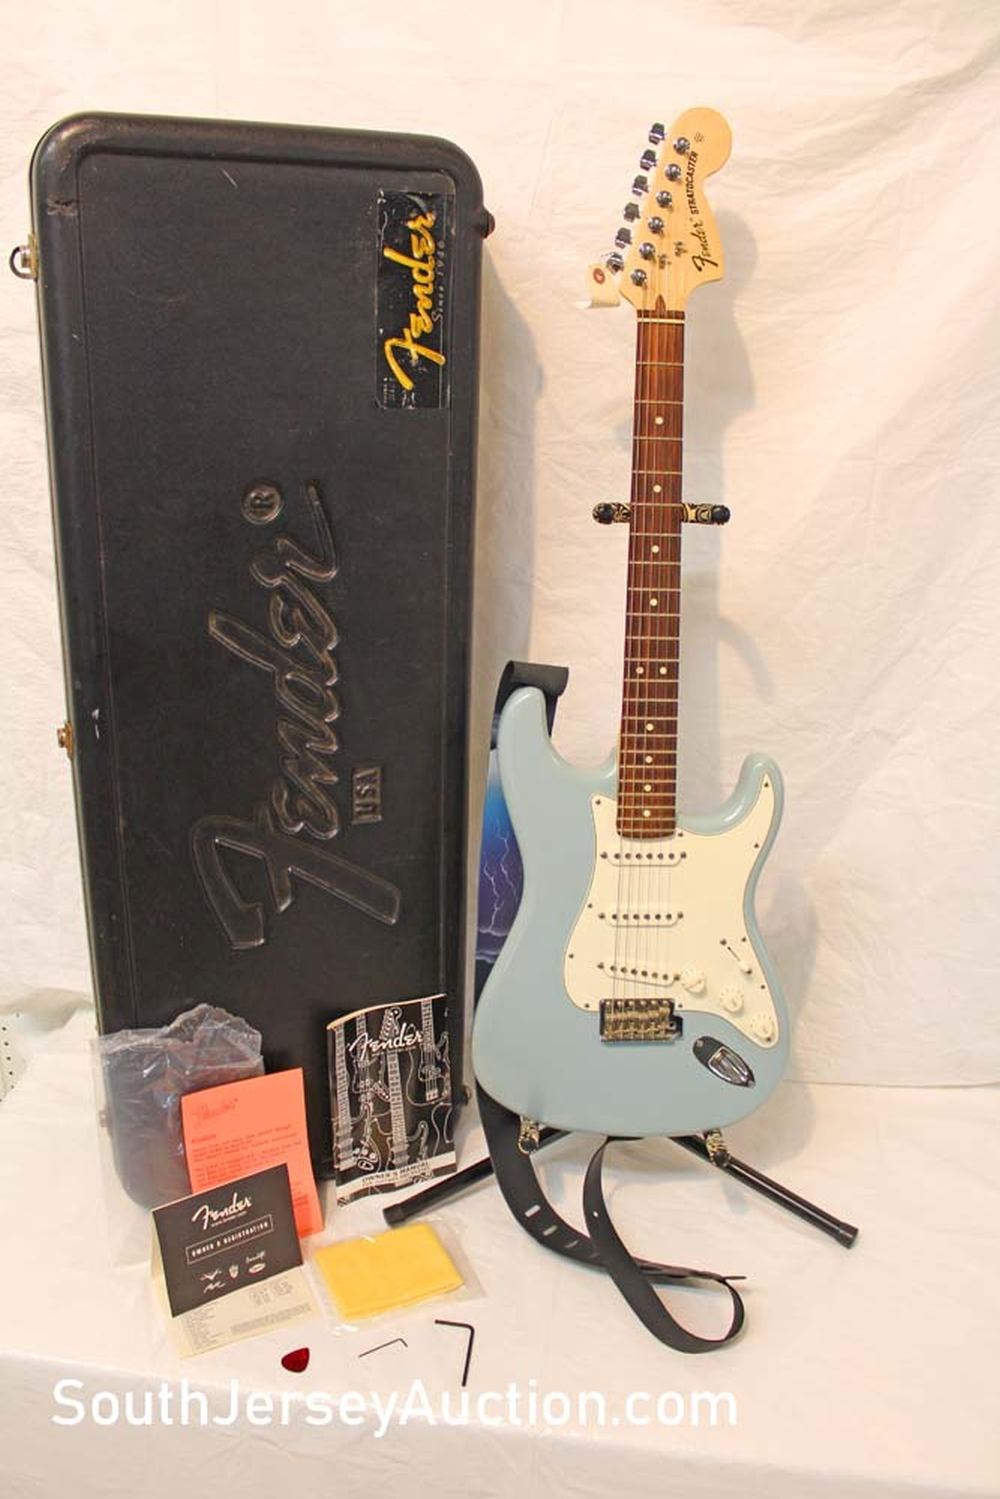 2016? Fender Stratocaster made in the USA, 60th Anniversary Issue, guitar in the frost blue, single single single pickups, s/n Z6164868 (badge is on head stock), original, excellent condition